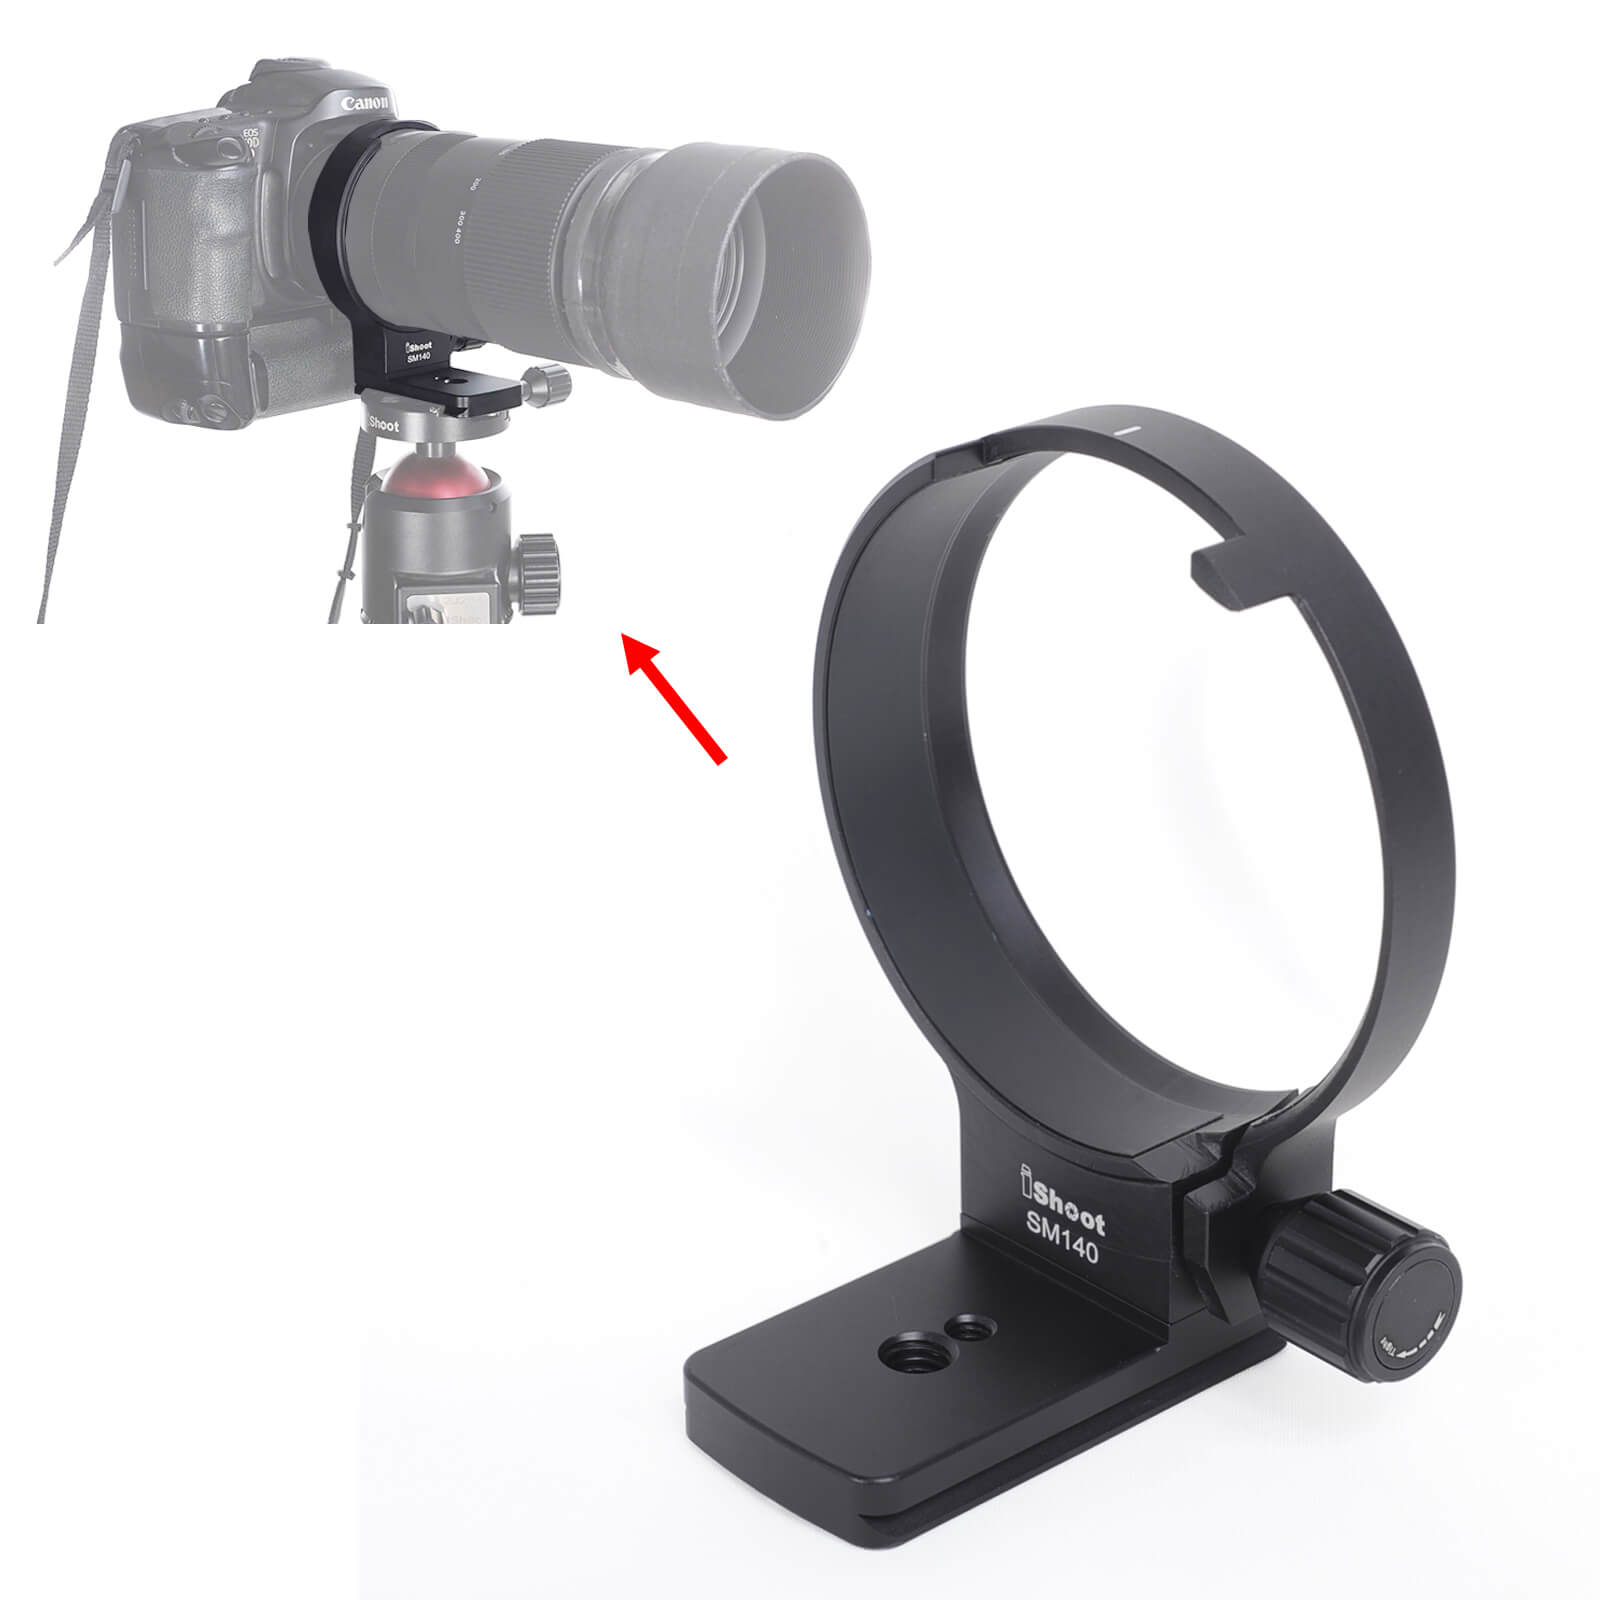 iShoot Metal Lens Replacement Foot Camera Lens Collar Base Tripod Mount Ring Support Adapter Stand for Sigma 500mm F4 DG OS HSM Sports Lens Build in Arca-Swiss Type Quick Release Plate